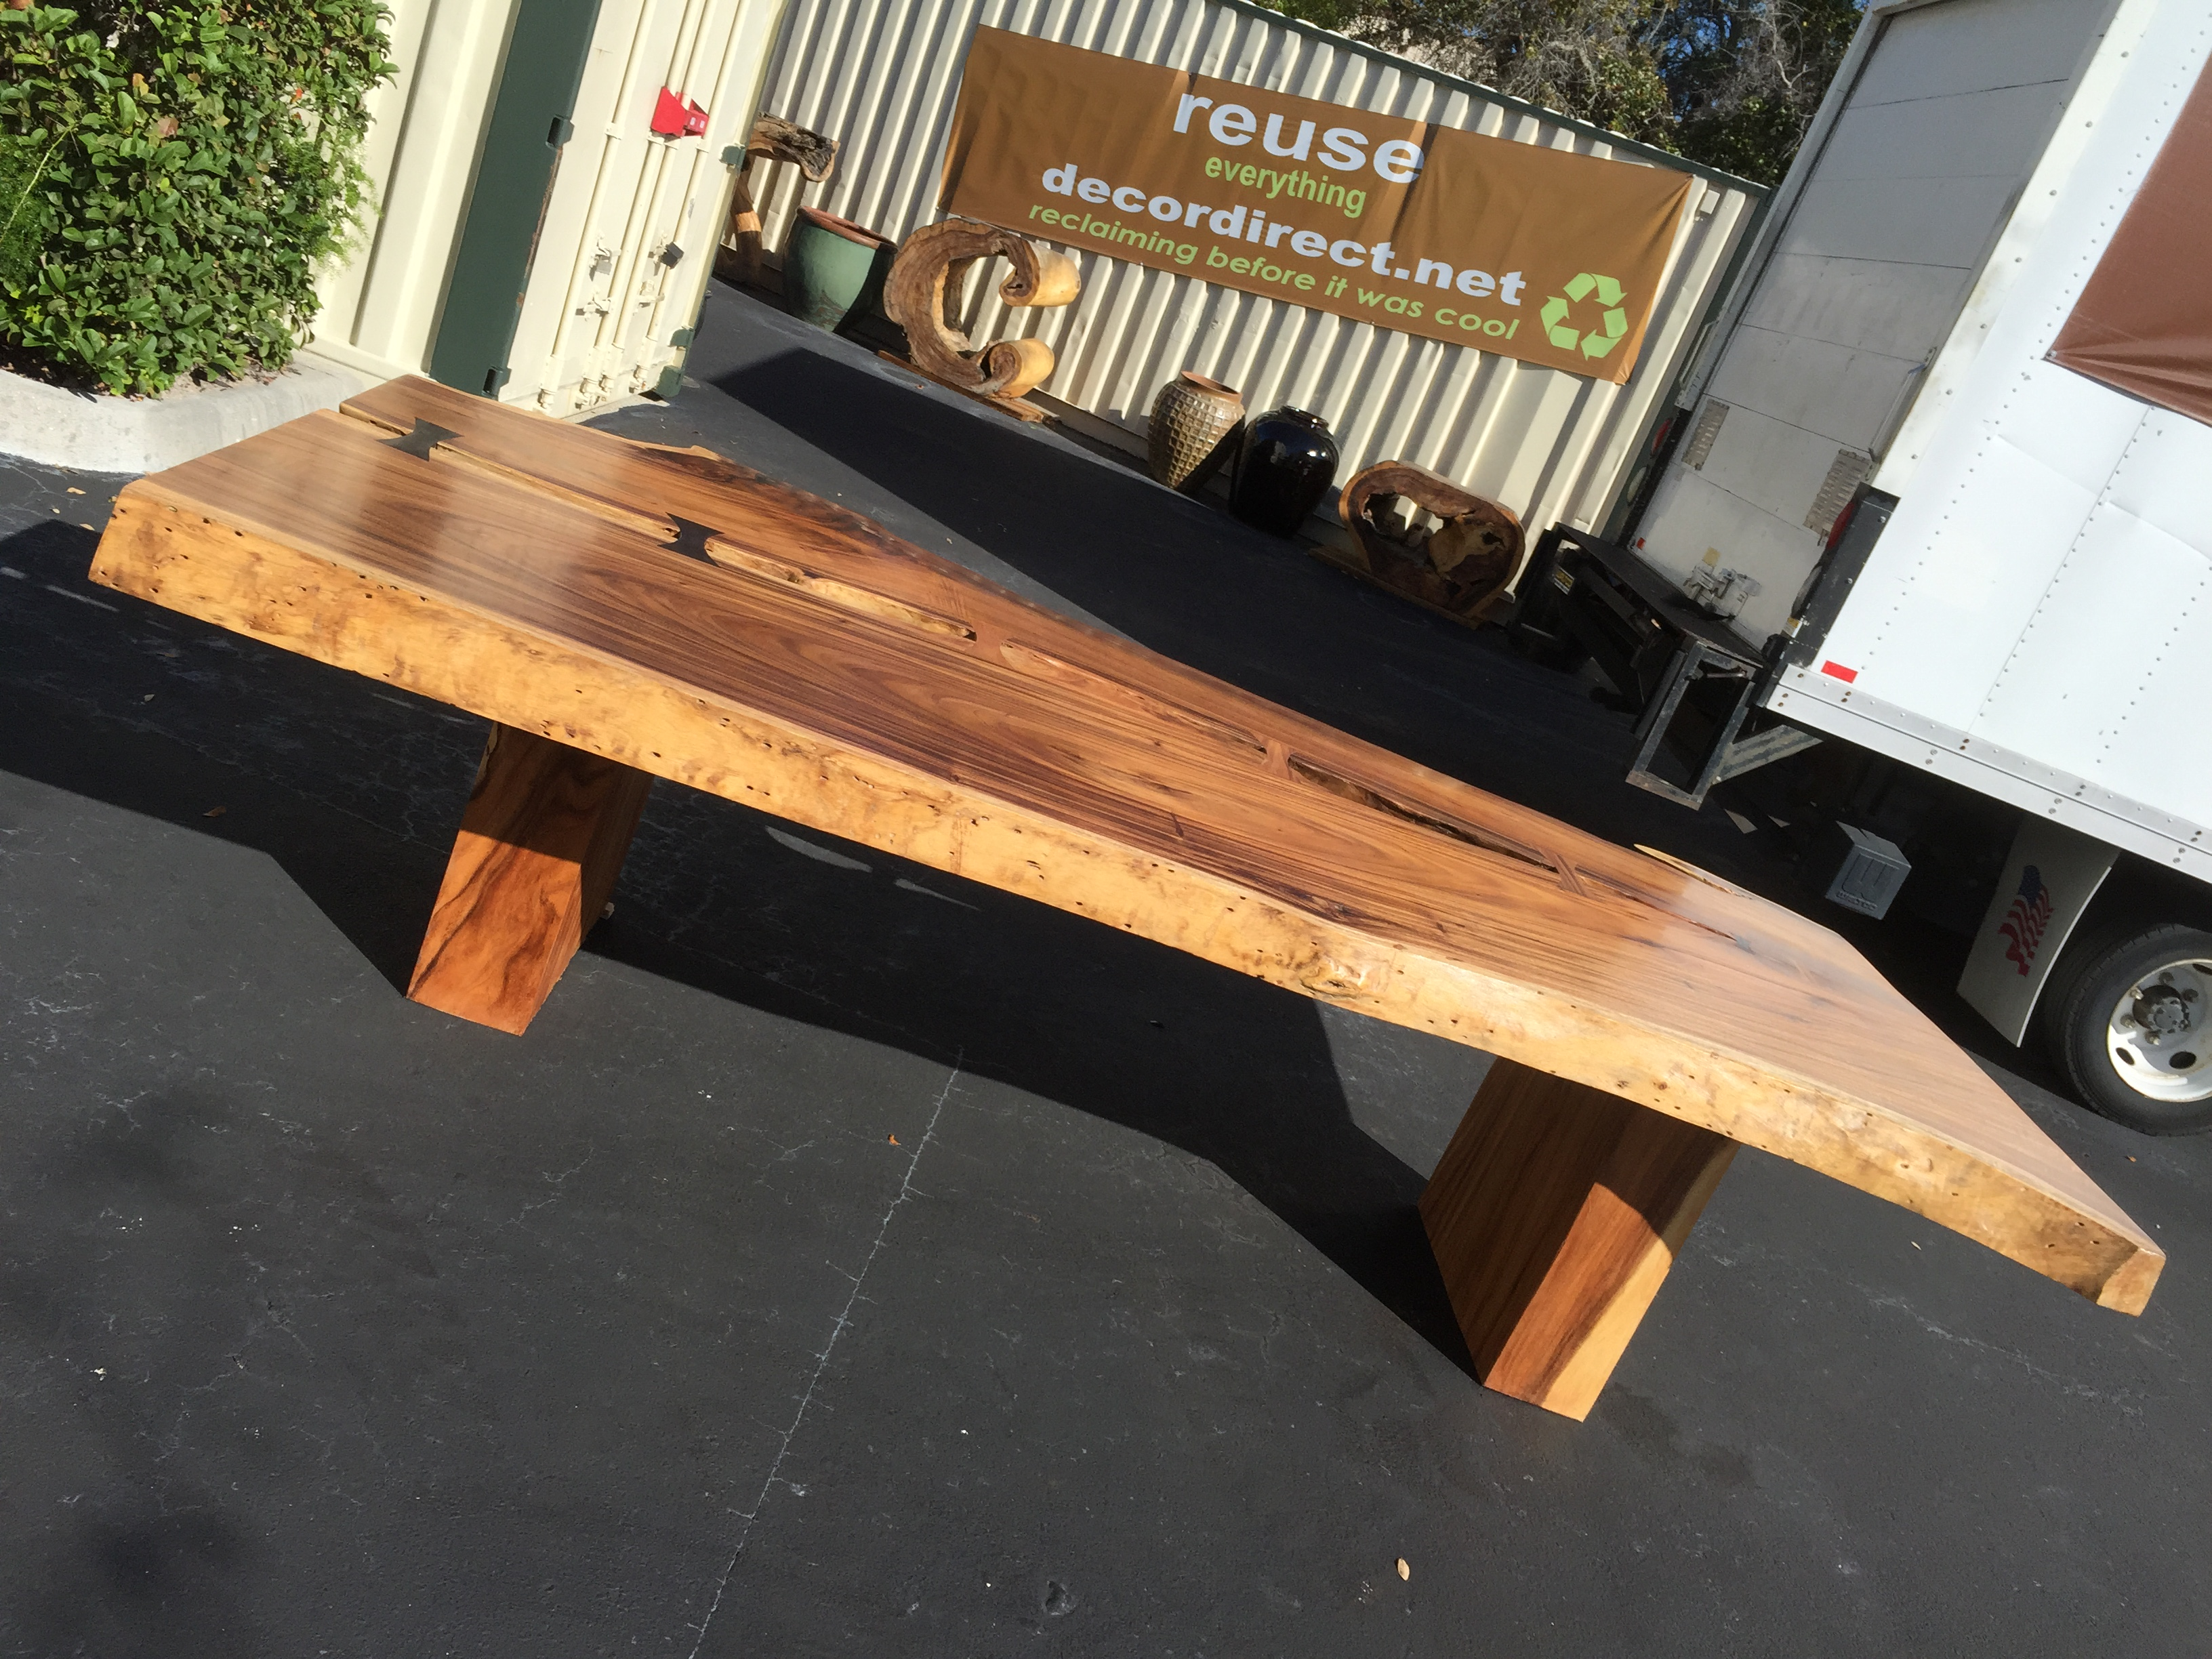 Reclaim Repurpose Restore at Decor Direct with Sustainable Furnishings Live  Edge Slab Furniture. Decor Direct Wholesale Warehouse Named One of Top 50 Furniture